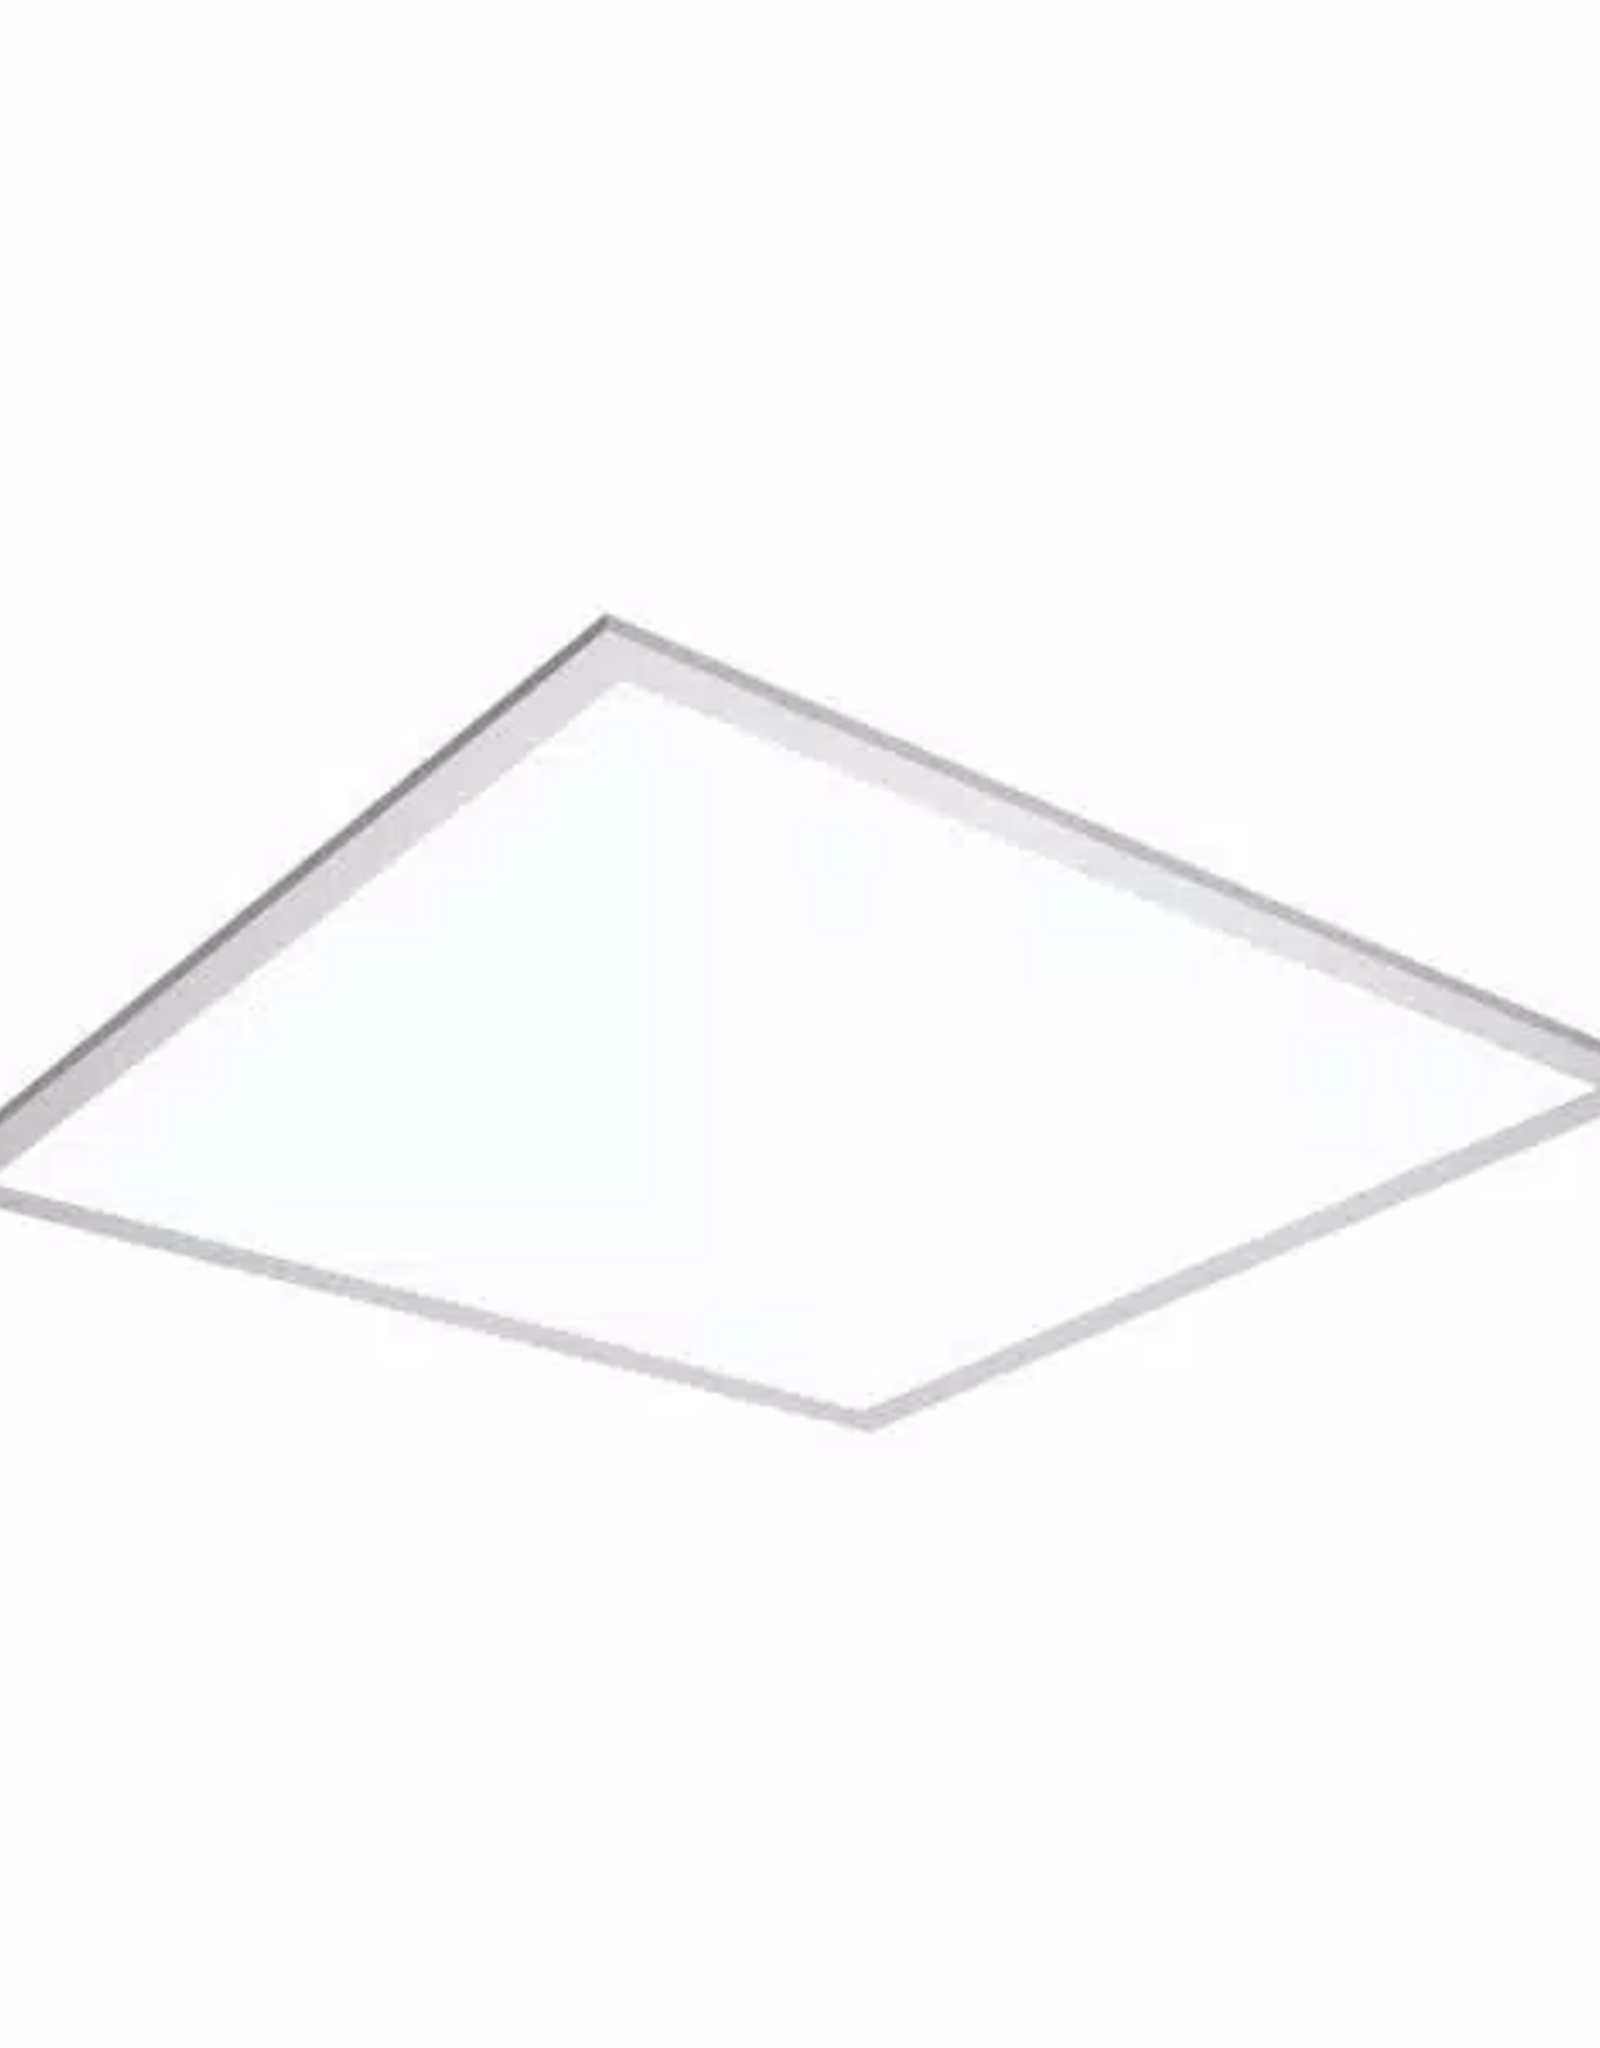 Metalux 2 ft. x 2 ft. White Integrated LED Dimmable Flat Panel Light with Selectable Color Temperature